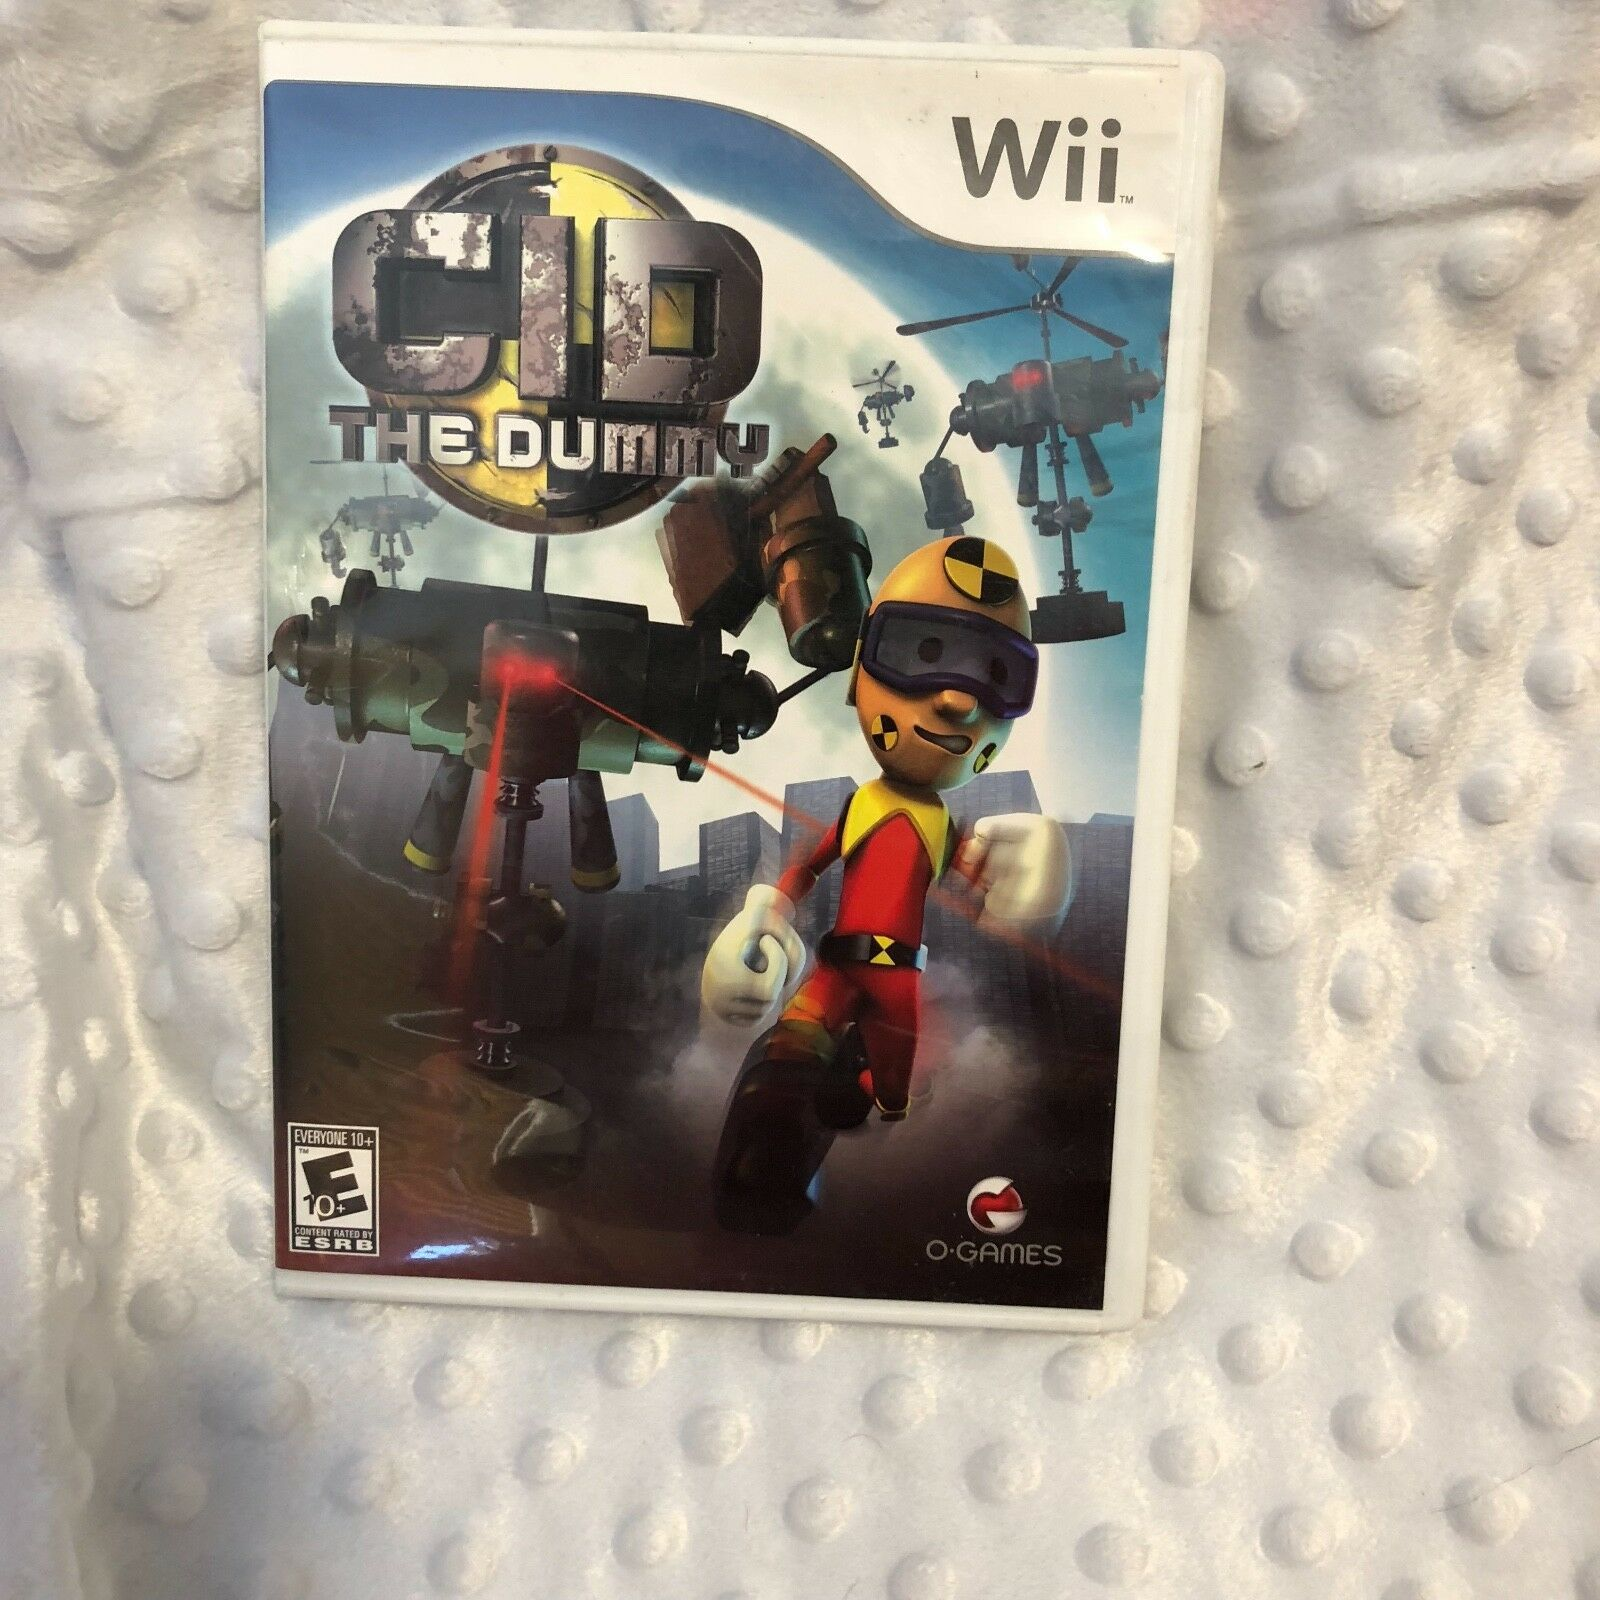 Wii Cid The Dummy Game Everyone 2009 Action Adventure